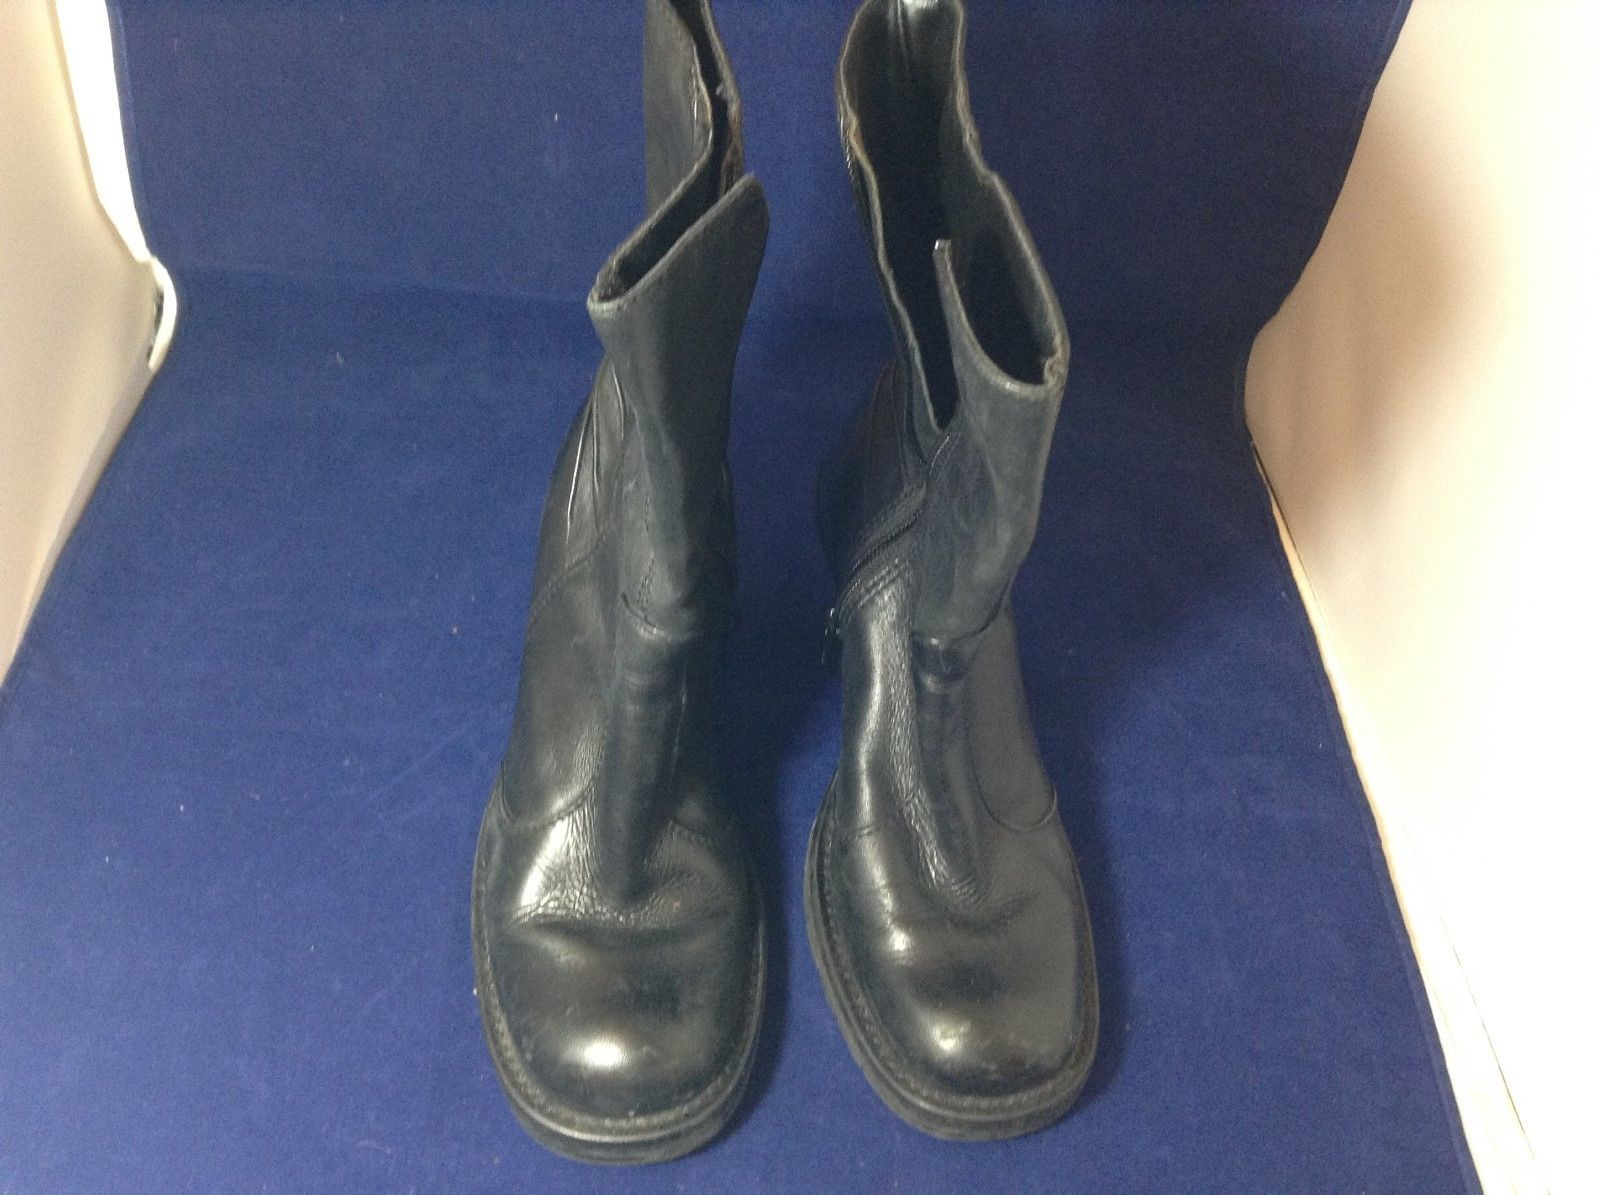 Steve Madden Black Leather High Heeled Boots Sz 6.5